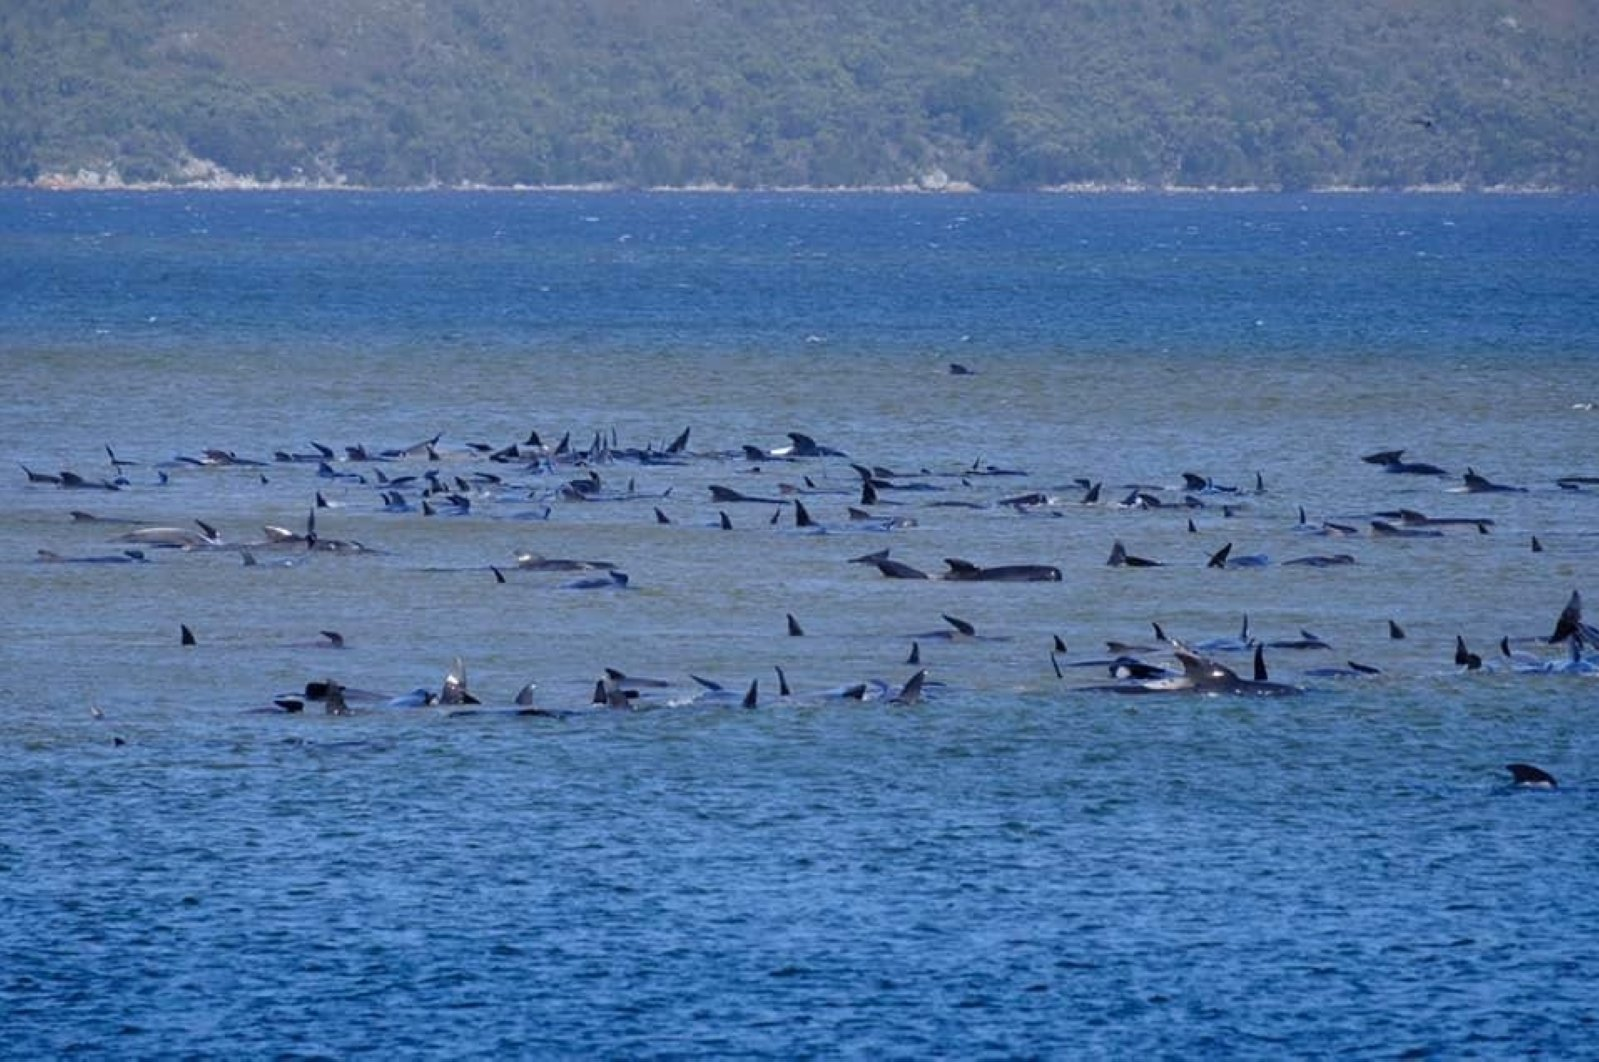 Stranded pilot whales are seen in Macquarie Heads in this picture obtained from social media, Tasmania, Australia Sept. 21, 2020. (RYAN BLOOMFIELD/via Reuters)